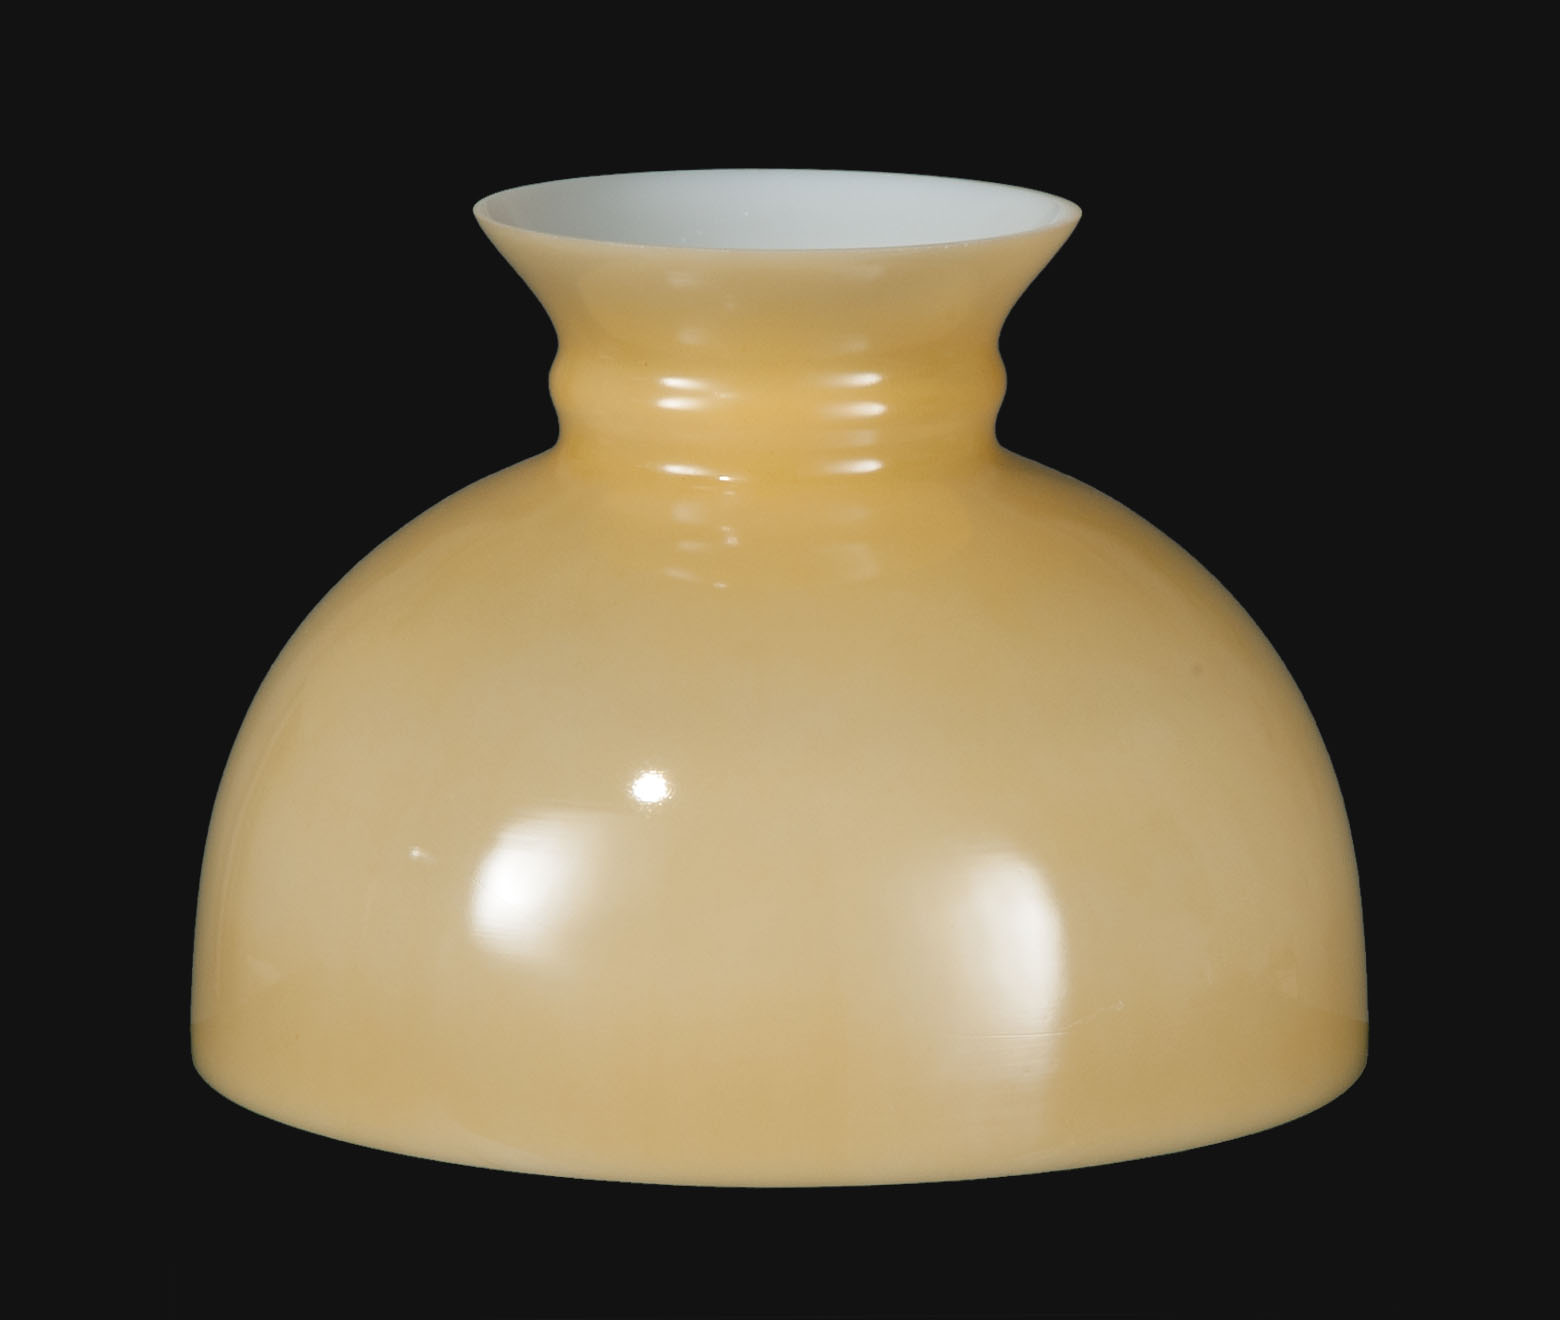 10 opal glass student shade buff nu gold 01168 bp lamp supply 01168 10 opal glass student shade buff nu gold aloadofball Choice Image